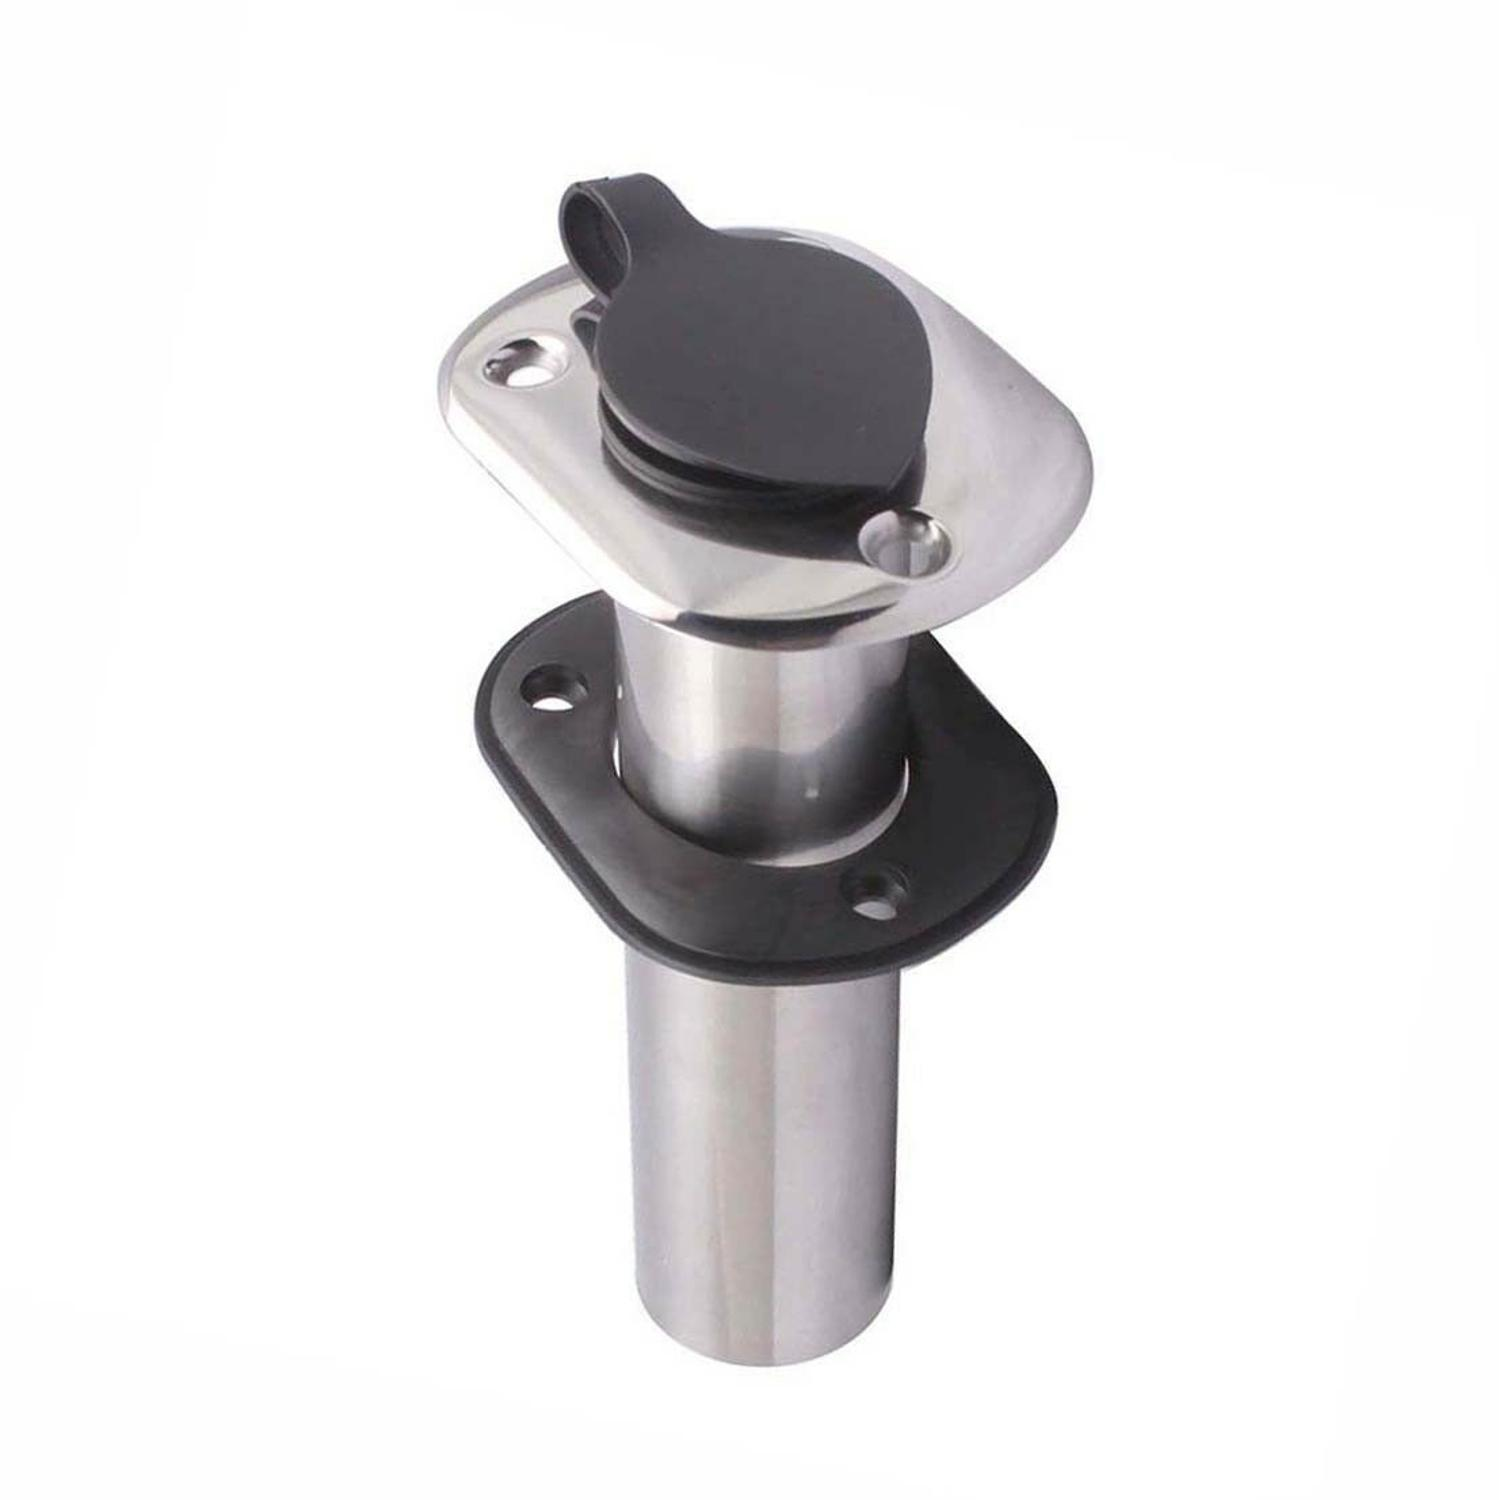 Stainless Steel Fishing Rod Holder 15 Degree Flush Mount Marine Yacht Boat